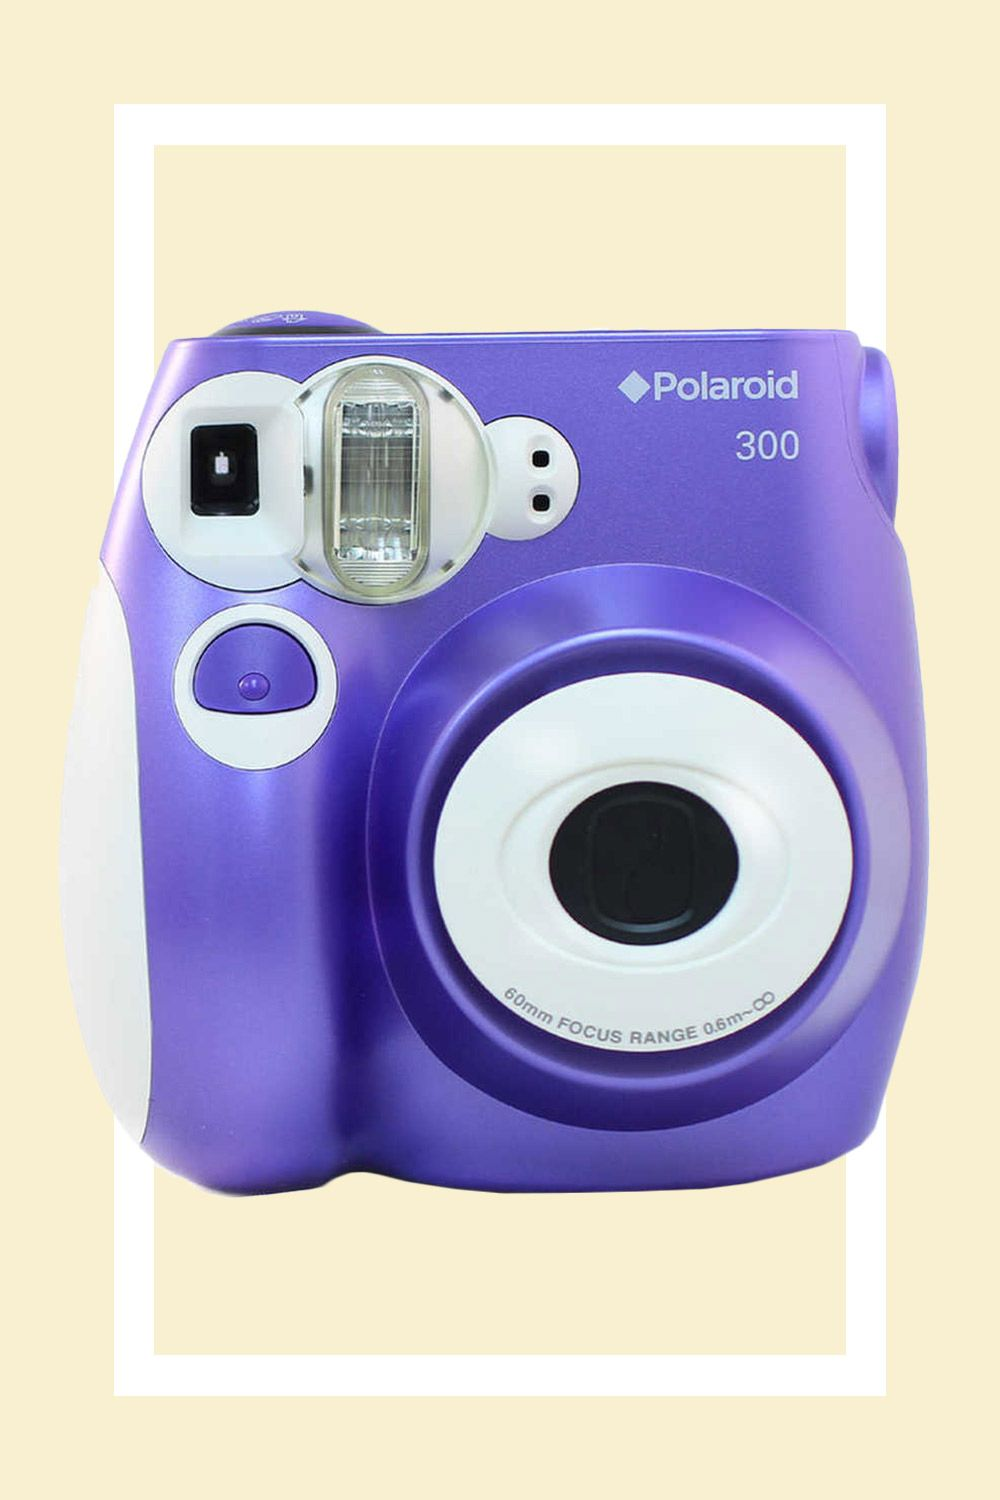 "<p>An updated version of the snap-and-print camera your parents came to love, with super sharp color and four scene settings to help you shoot during the day and at night without sacrificing image quality. </p><p><strong>Polaroid 300 Instant Camera, $80; <a href=""http://www.target.com/p/polaroid-300-instant-camera/-/A-15038567"" target=""_blank"">target.com</a>. </strong></p>"